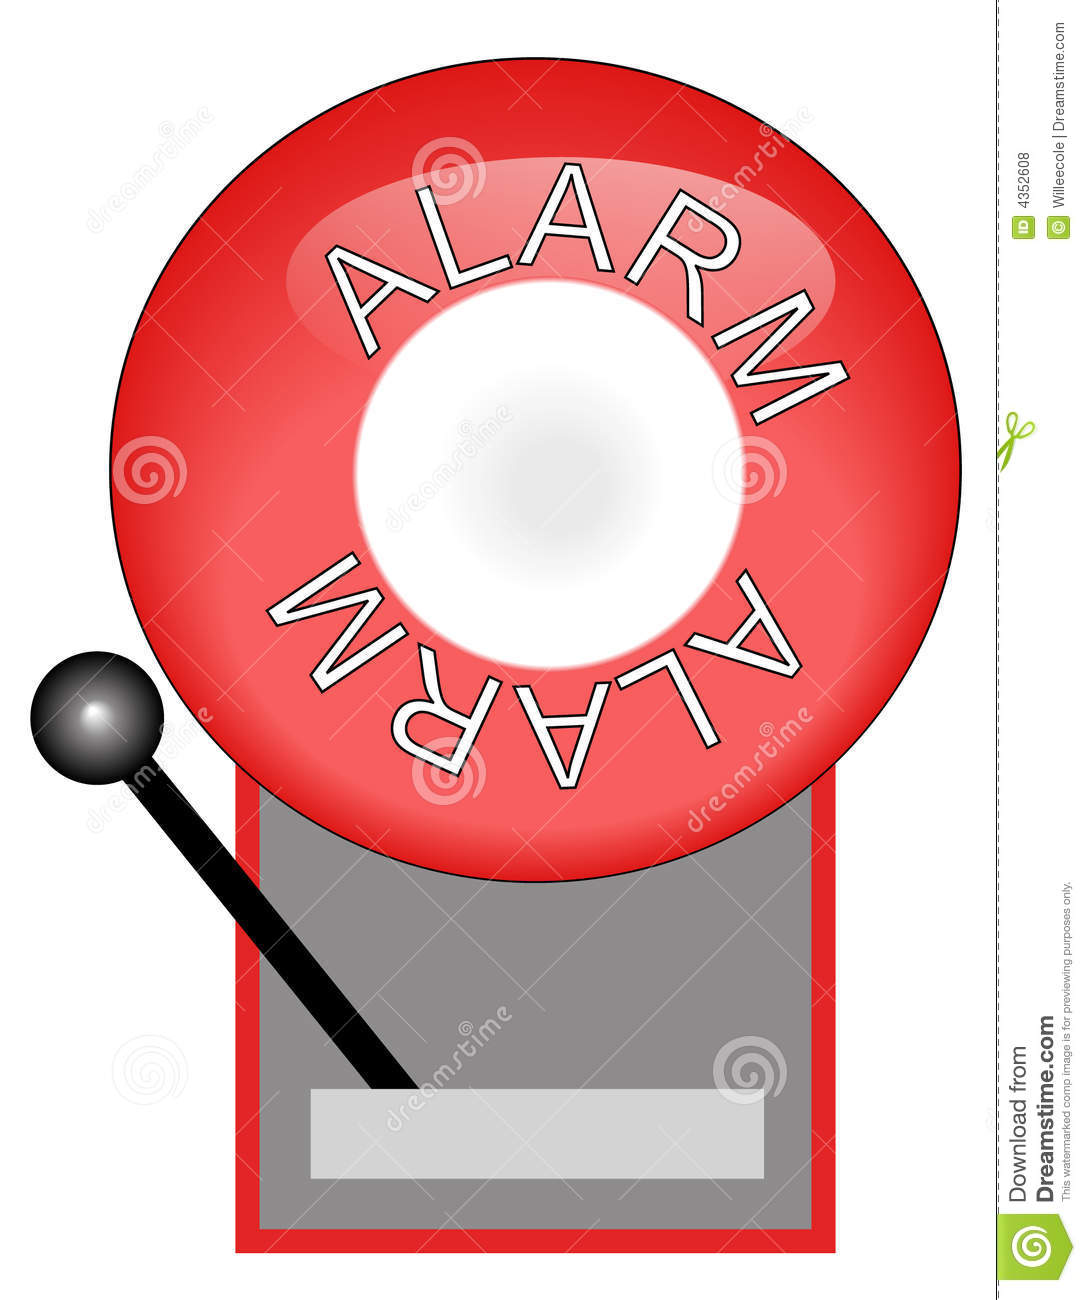 Red Fire Alarm Royalty Free Stock Photos Image 4352608